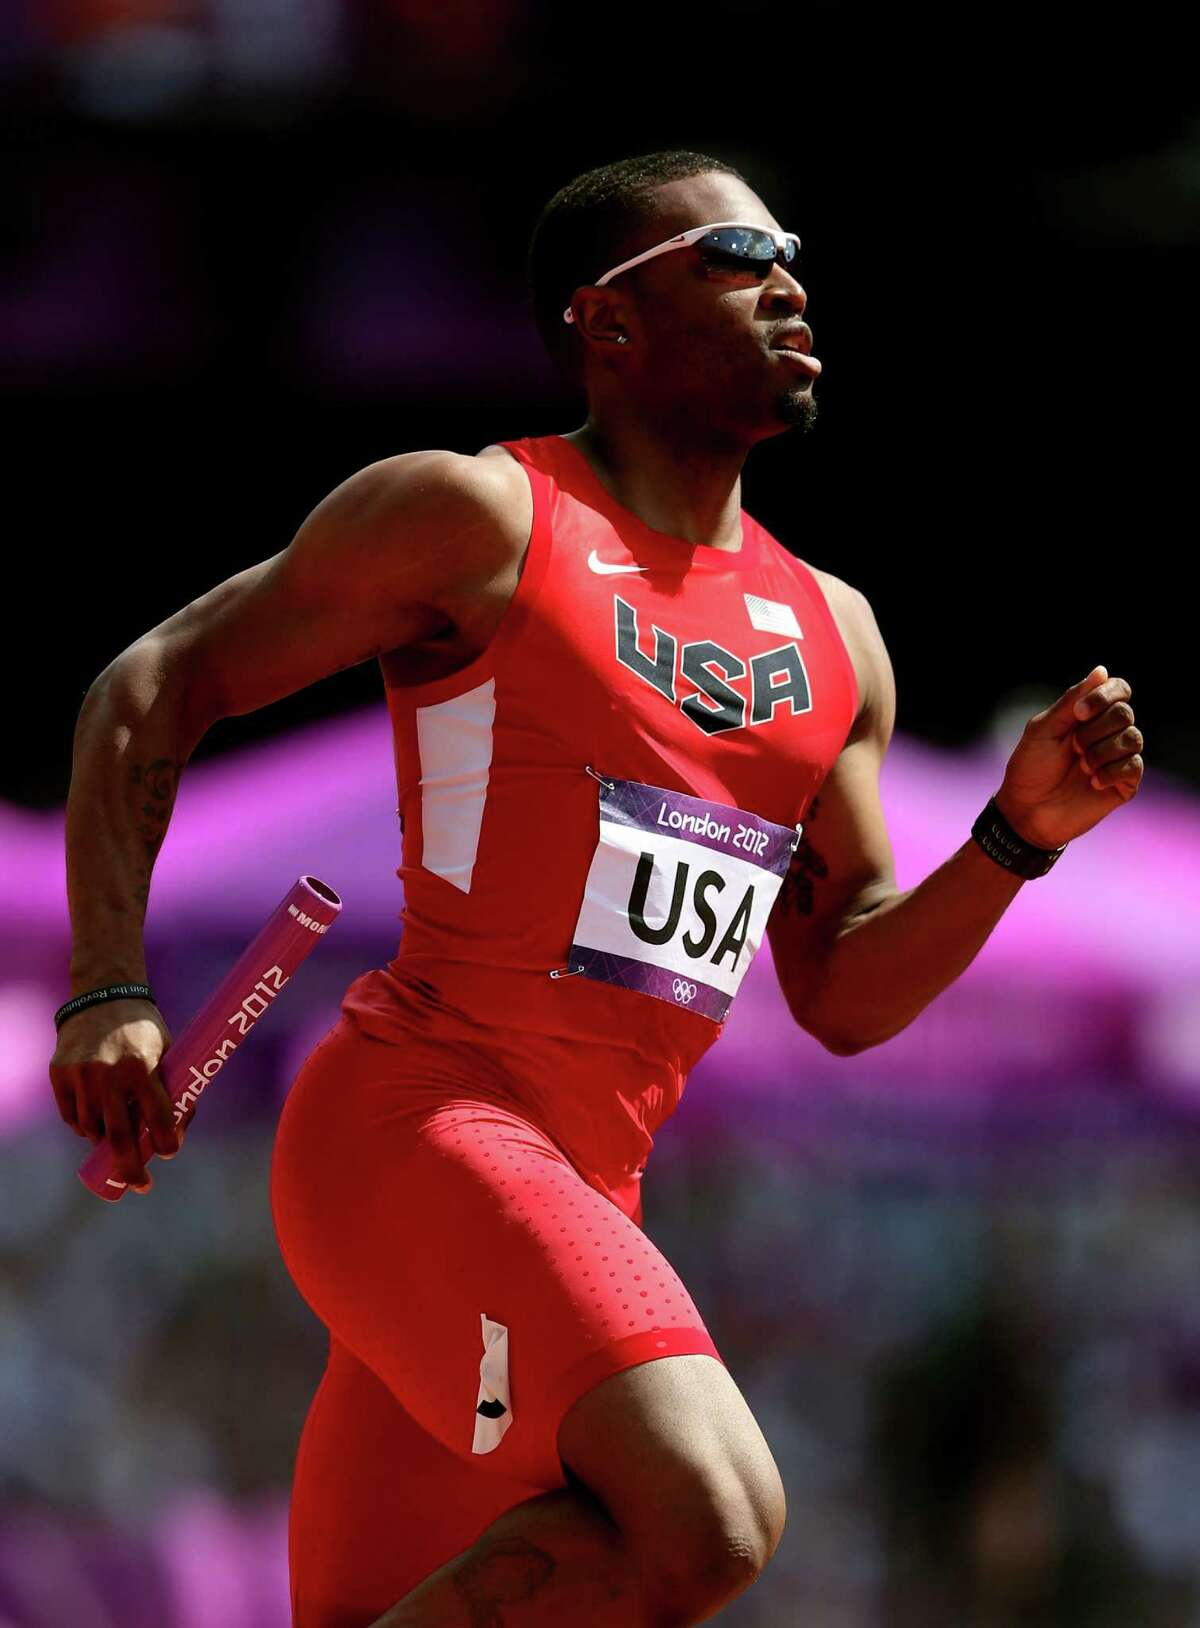 : Manteo Mitchell of the United States competes during the Men's 4 x 400m Relay Round 1 heats on Day 13 of the London 2012 Olympic Games at Olympic Stadium on Thursday.